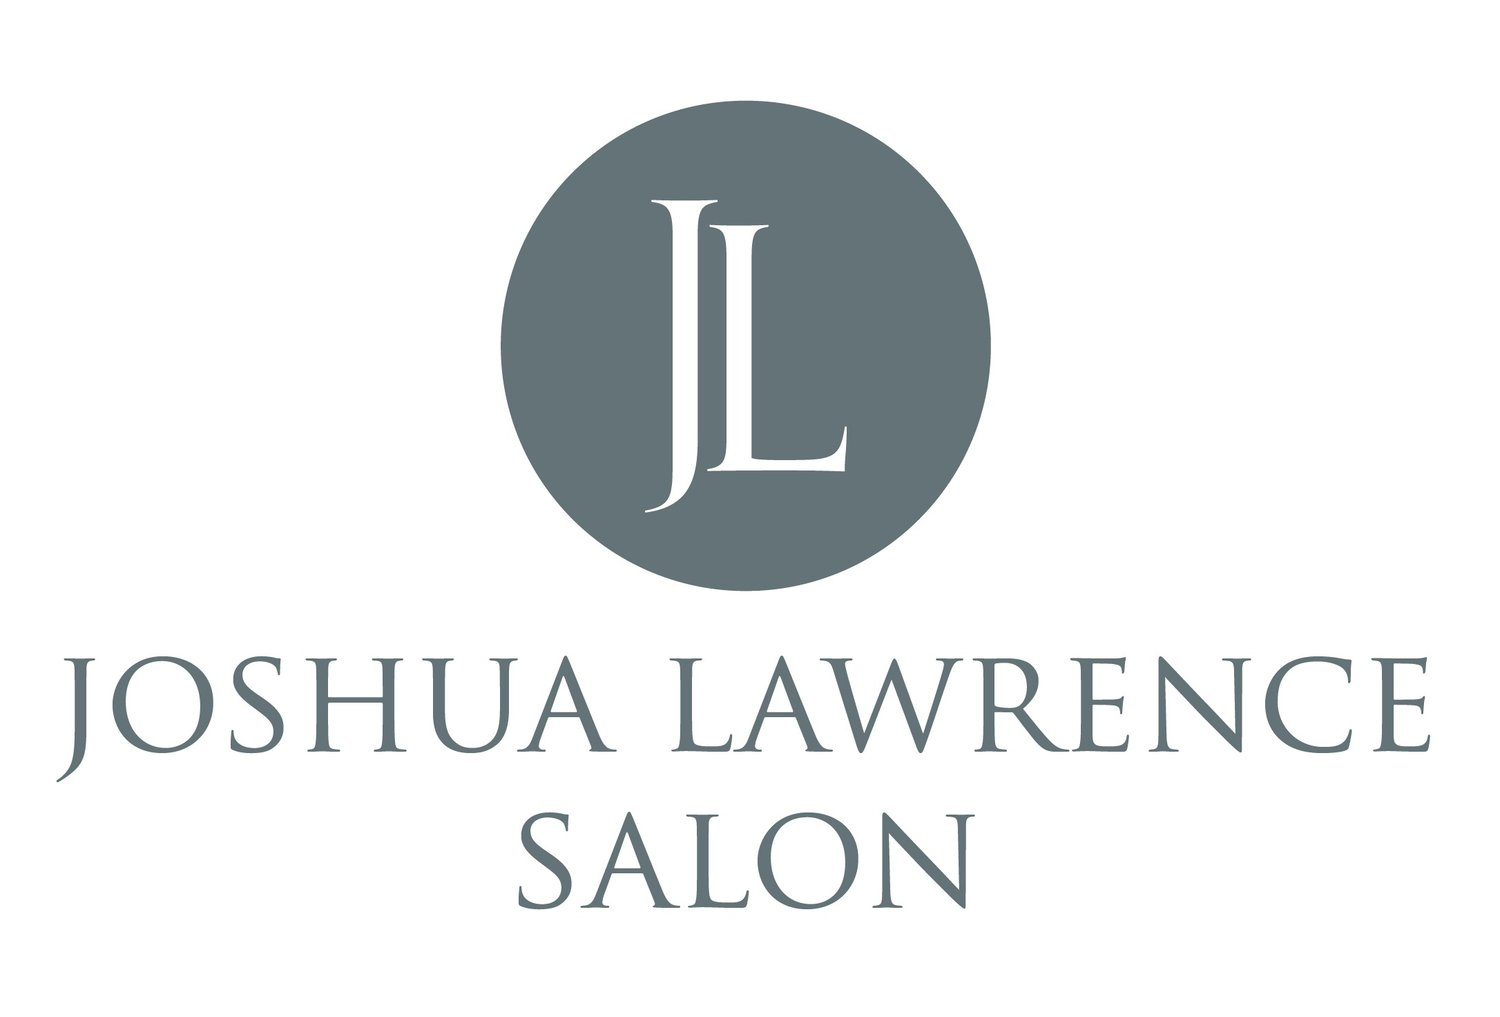 Joshua Lawrence Salon